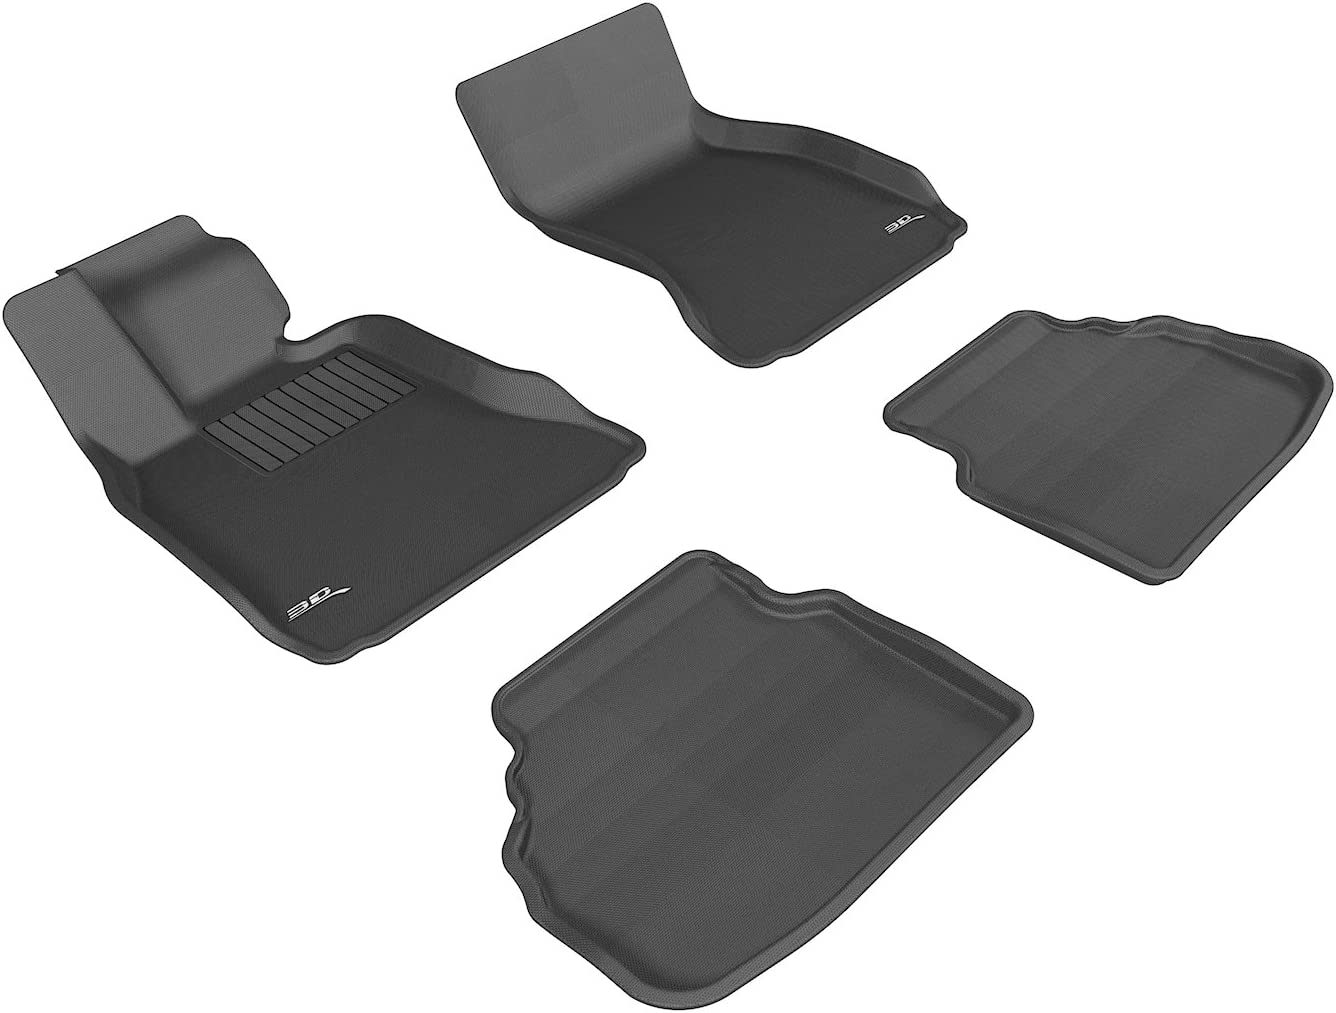 3D MAXpider Complete Set Custom Fit All-Weather Floor Mat for Select BMW 7 Series (F01) Models - Kagu Rubber (Black) 71JX7O2YnwL